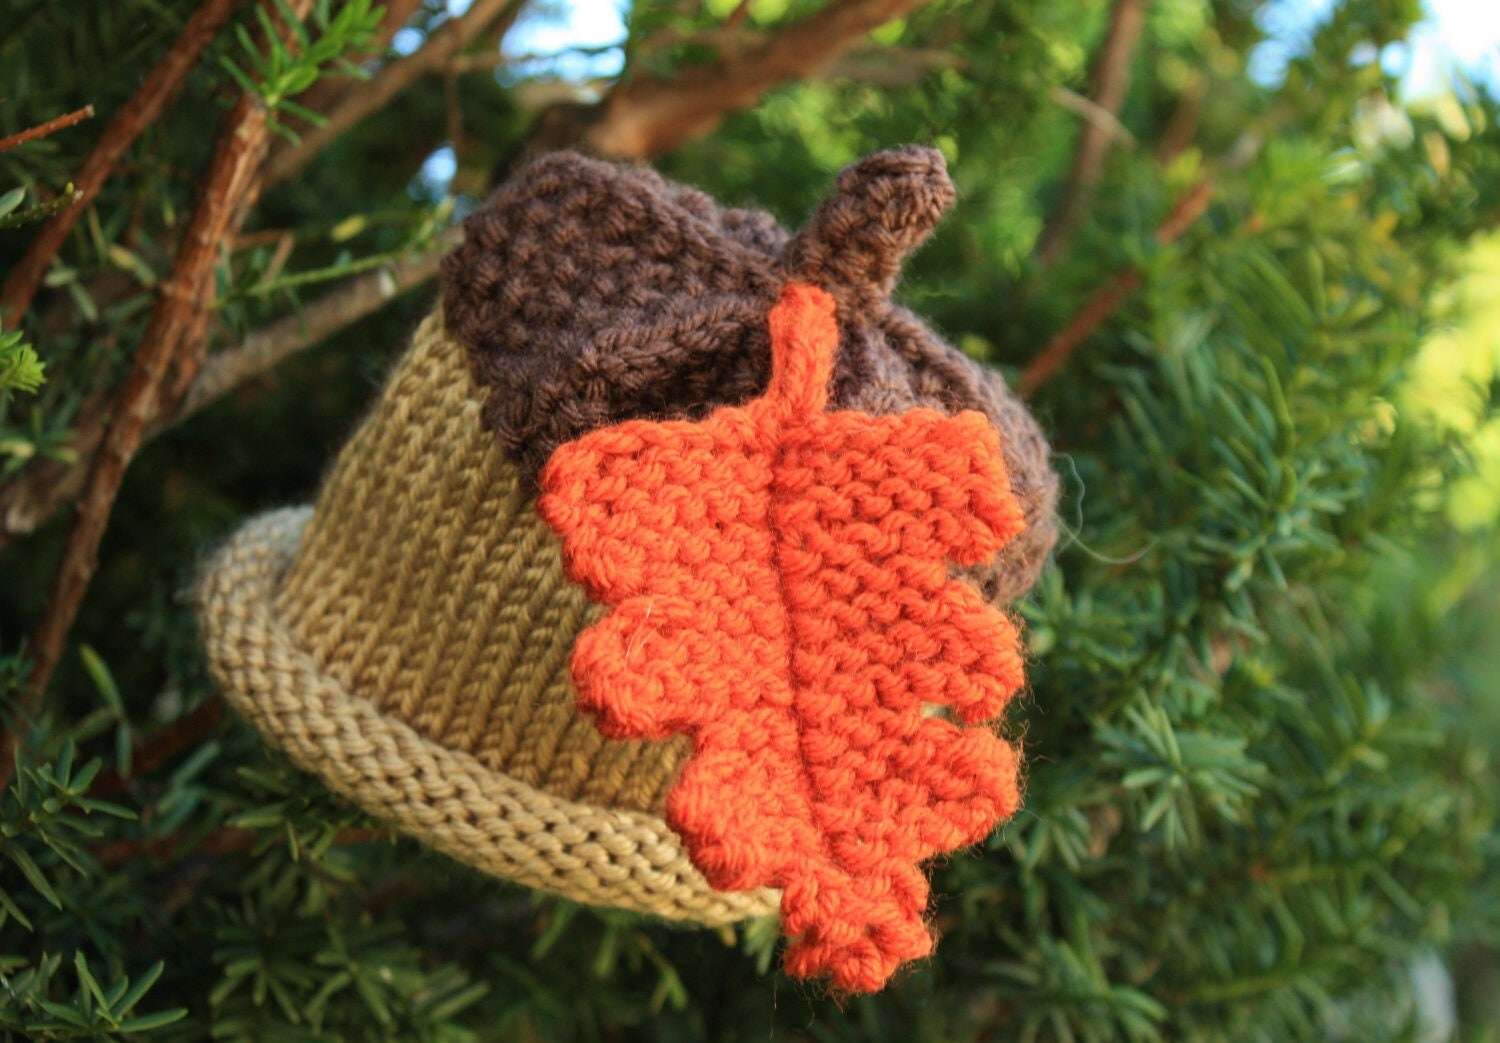 Knit Acorn Hat with Orange Leaf Baby Infant or Child Newborn